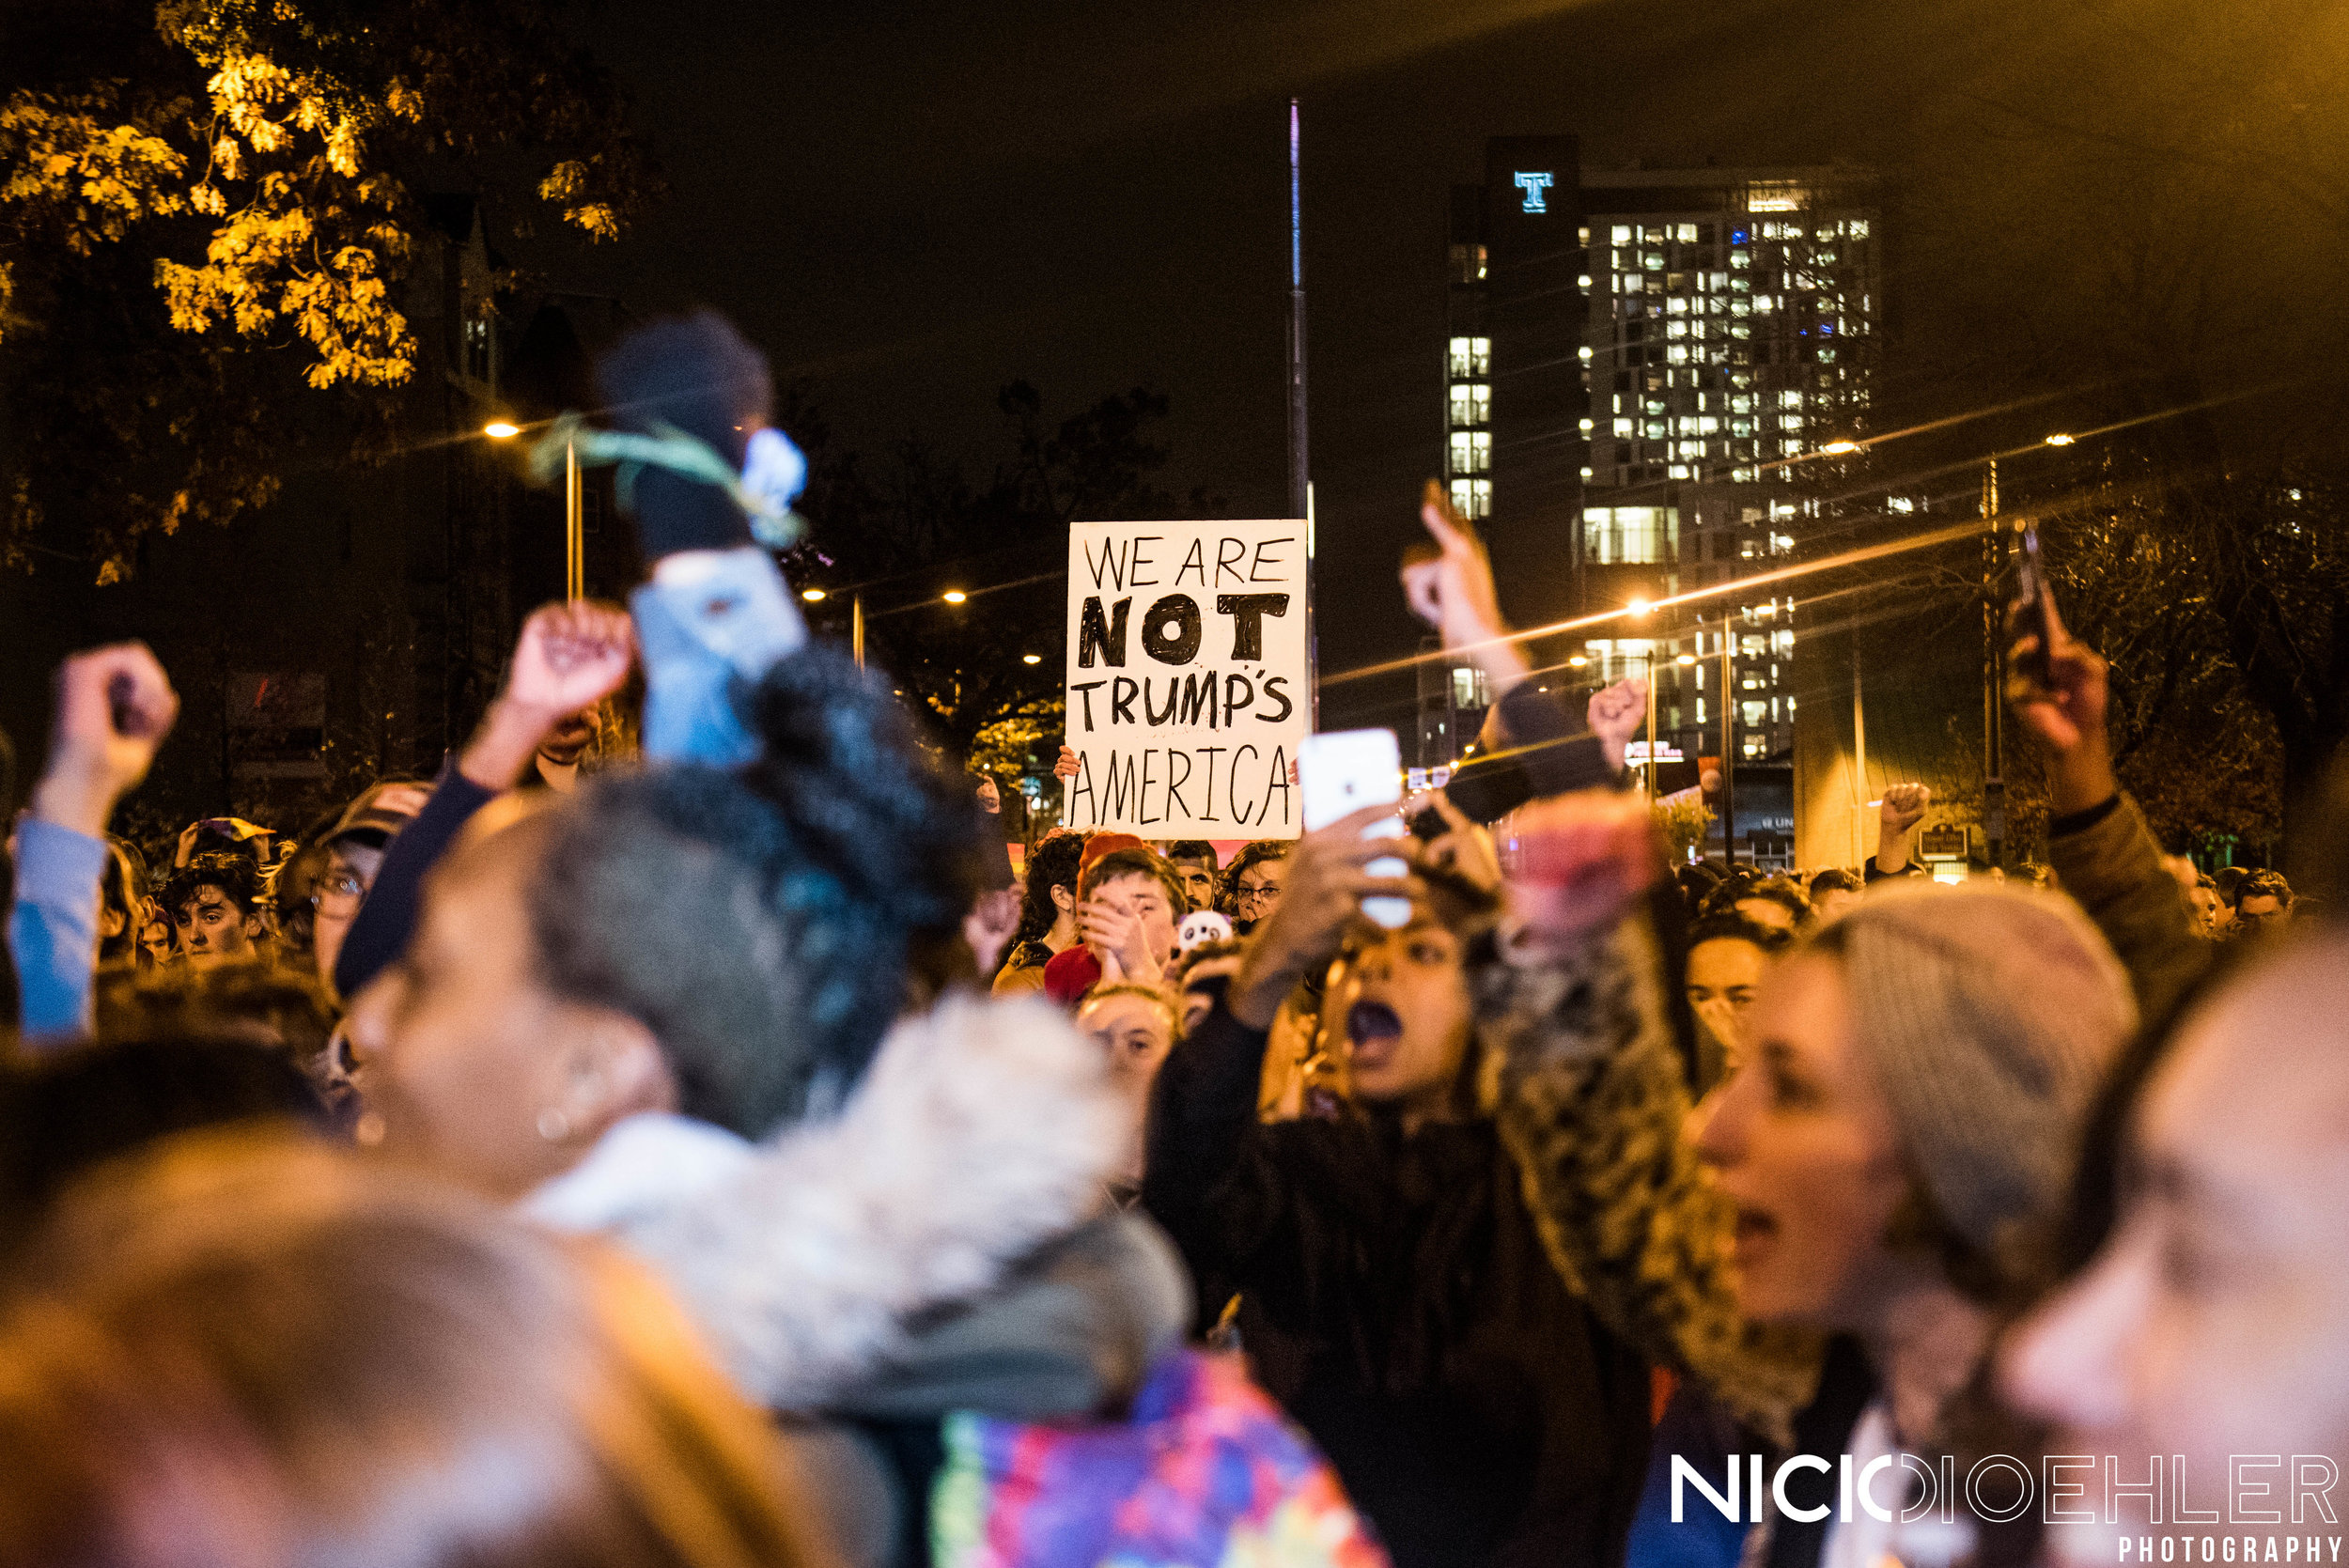 """A sign (""""We Are Not Trump's America"""")amidst all the people protesting."""